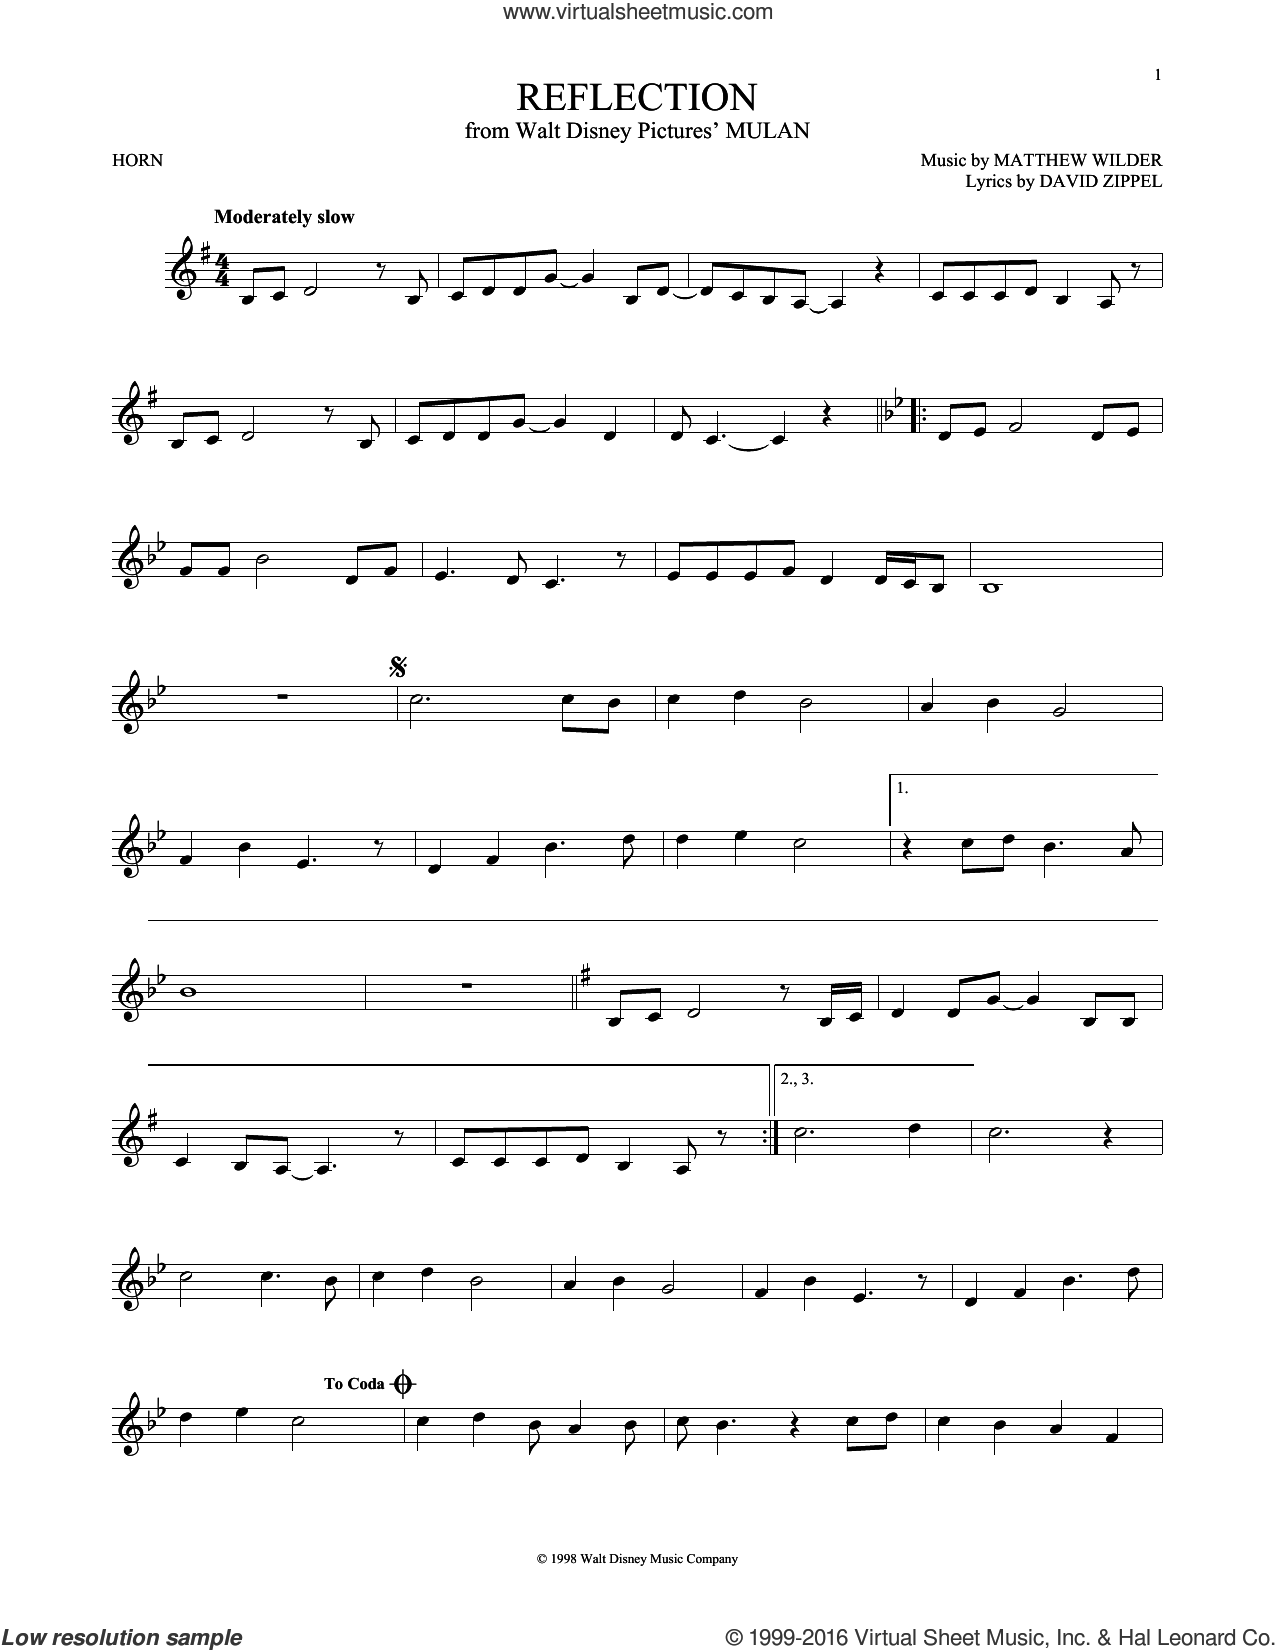 Reflection (Pop Version) (from Mulan) sheet music for horn solo by Christina Aguilera, David Zippel and Matthew Wilder, intermediate skill level